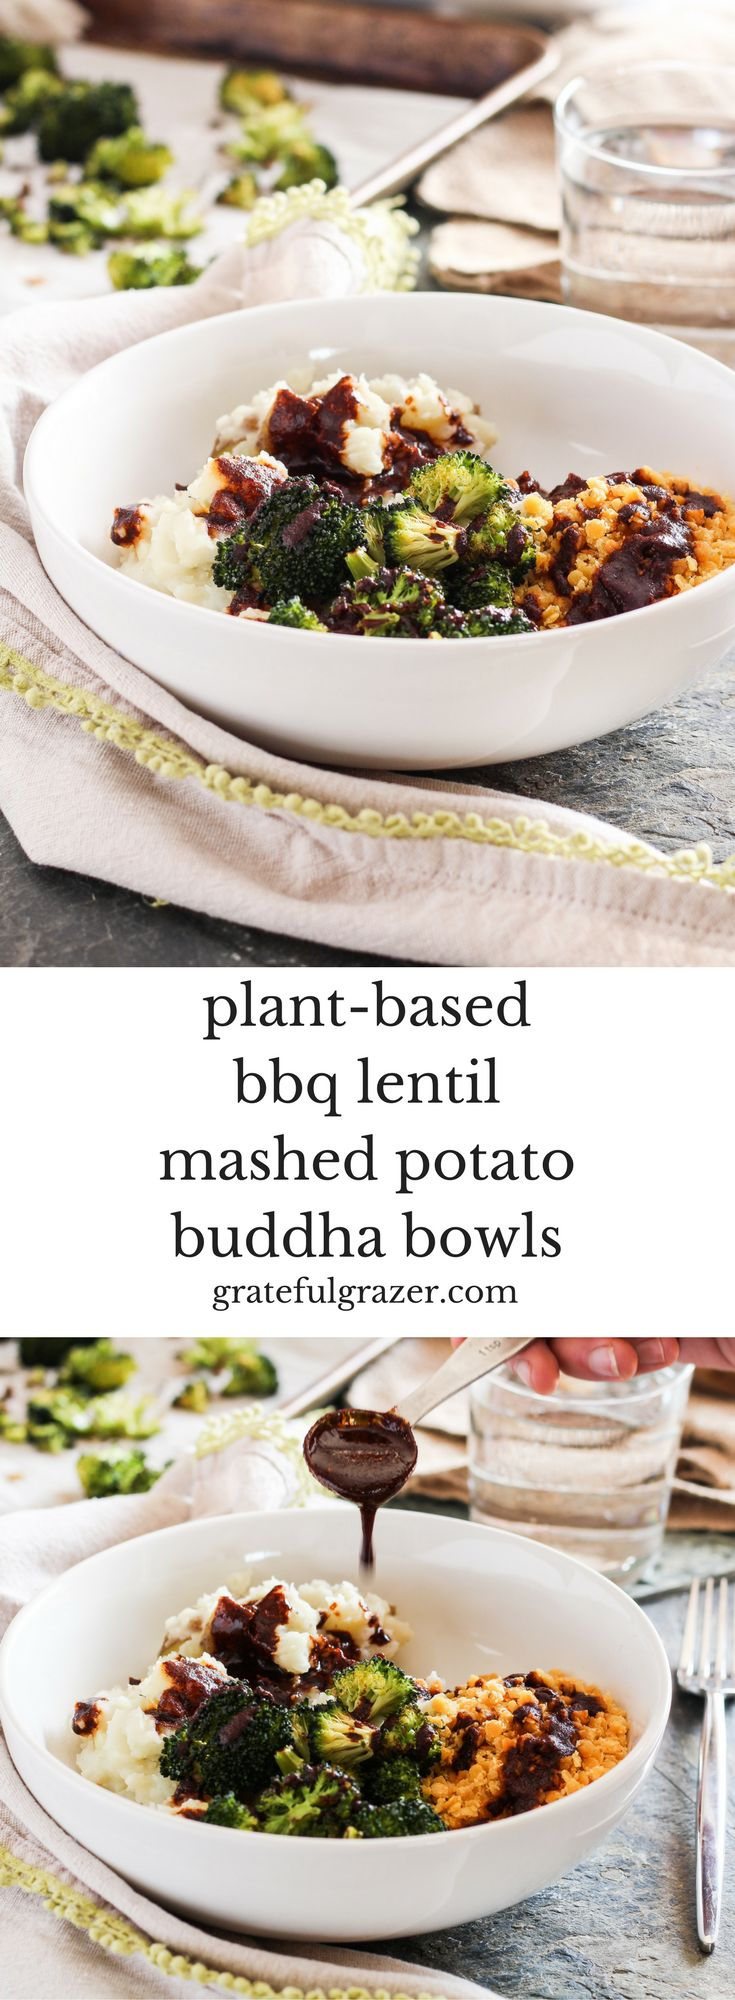 (ad) Refuel after a tough workout with nourishing and protein-rich plant-based BBQ Lentil Mashed Potato Bowls with zesty balsamic barbecue sauce. via @gratefulgrazer